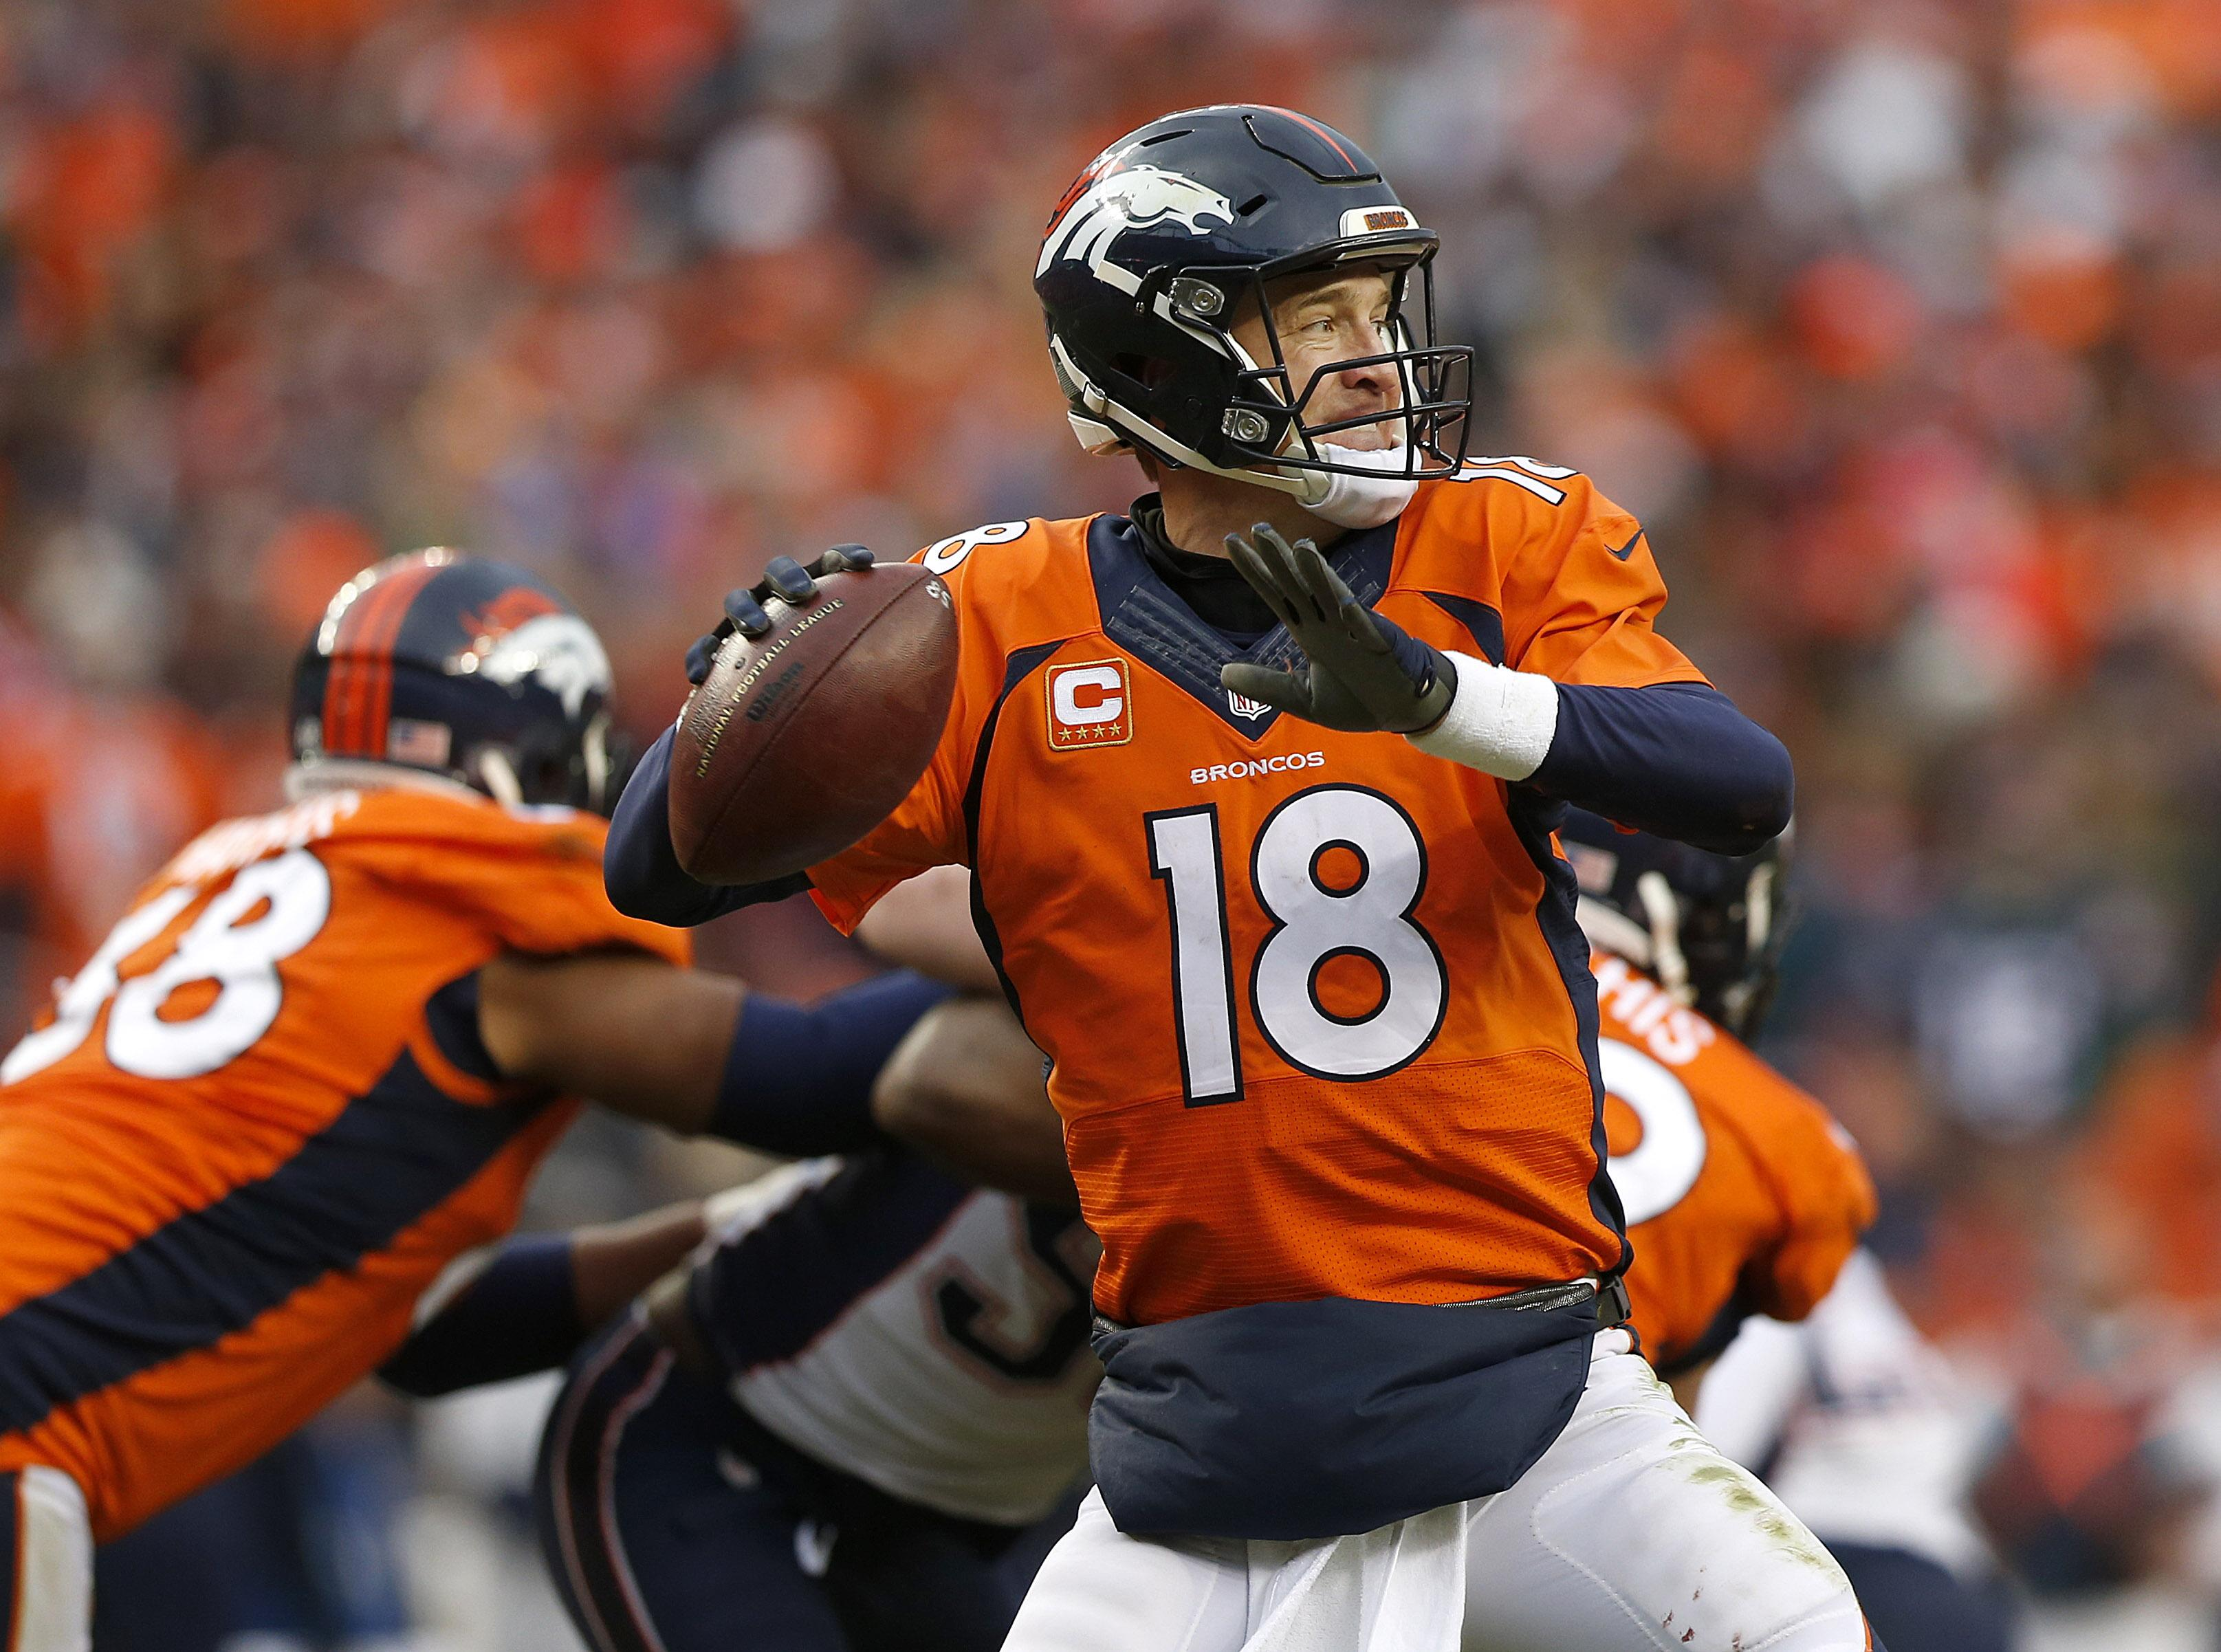 Super bowl could be peyton mannings last game cam newtons finest sunday may mark the final throws for denver broncos quarterback peyton manning david zalubowski m4hsunfo